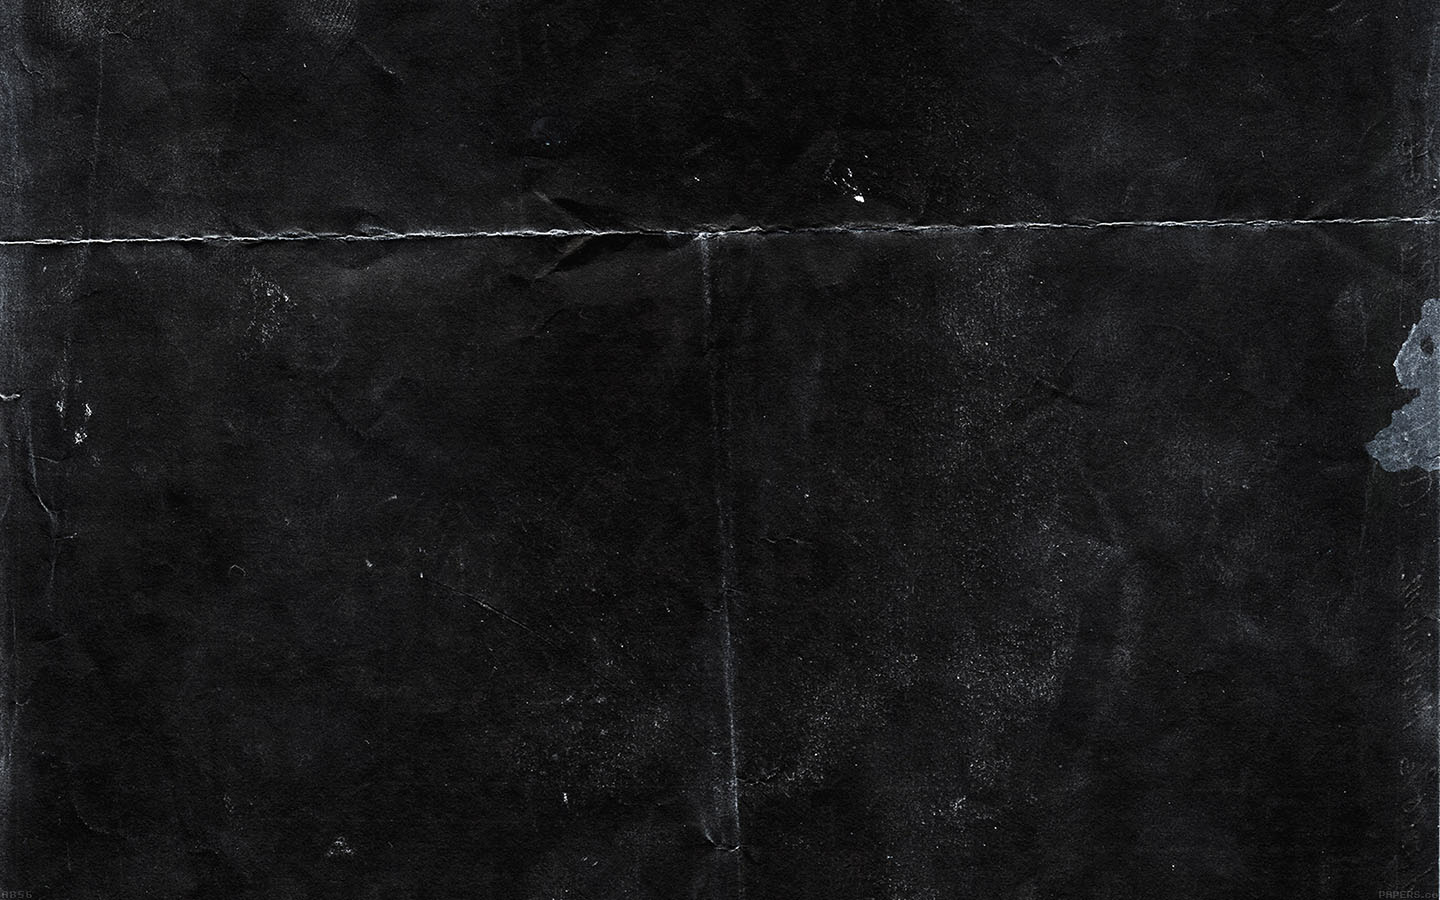 Old Paper Wallpaper Hd Ab56 Wallpaper Grunge Paper Texture Papers Co